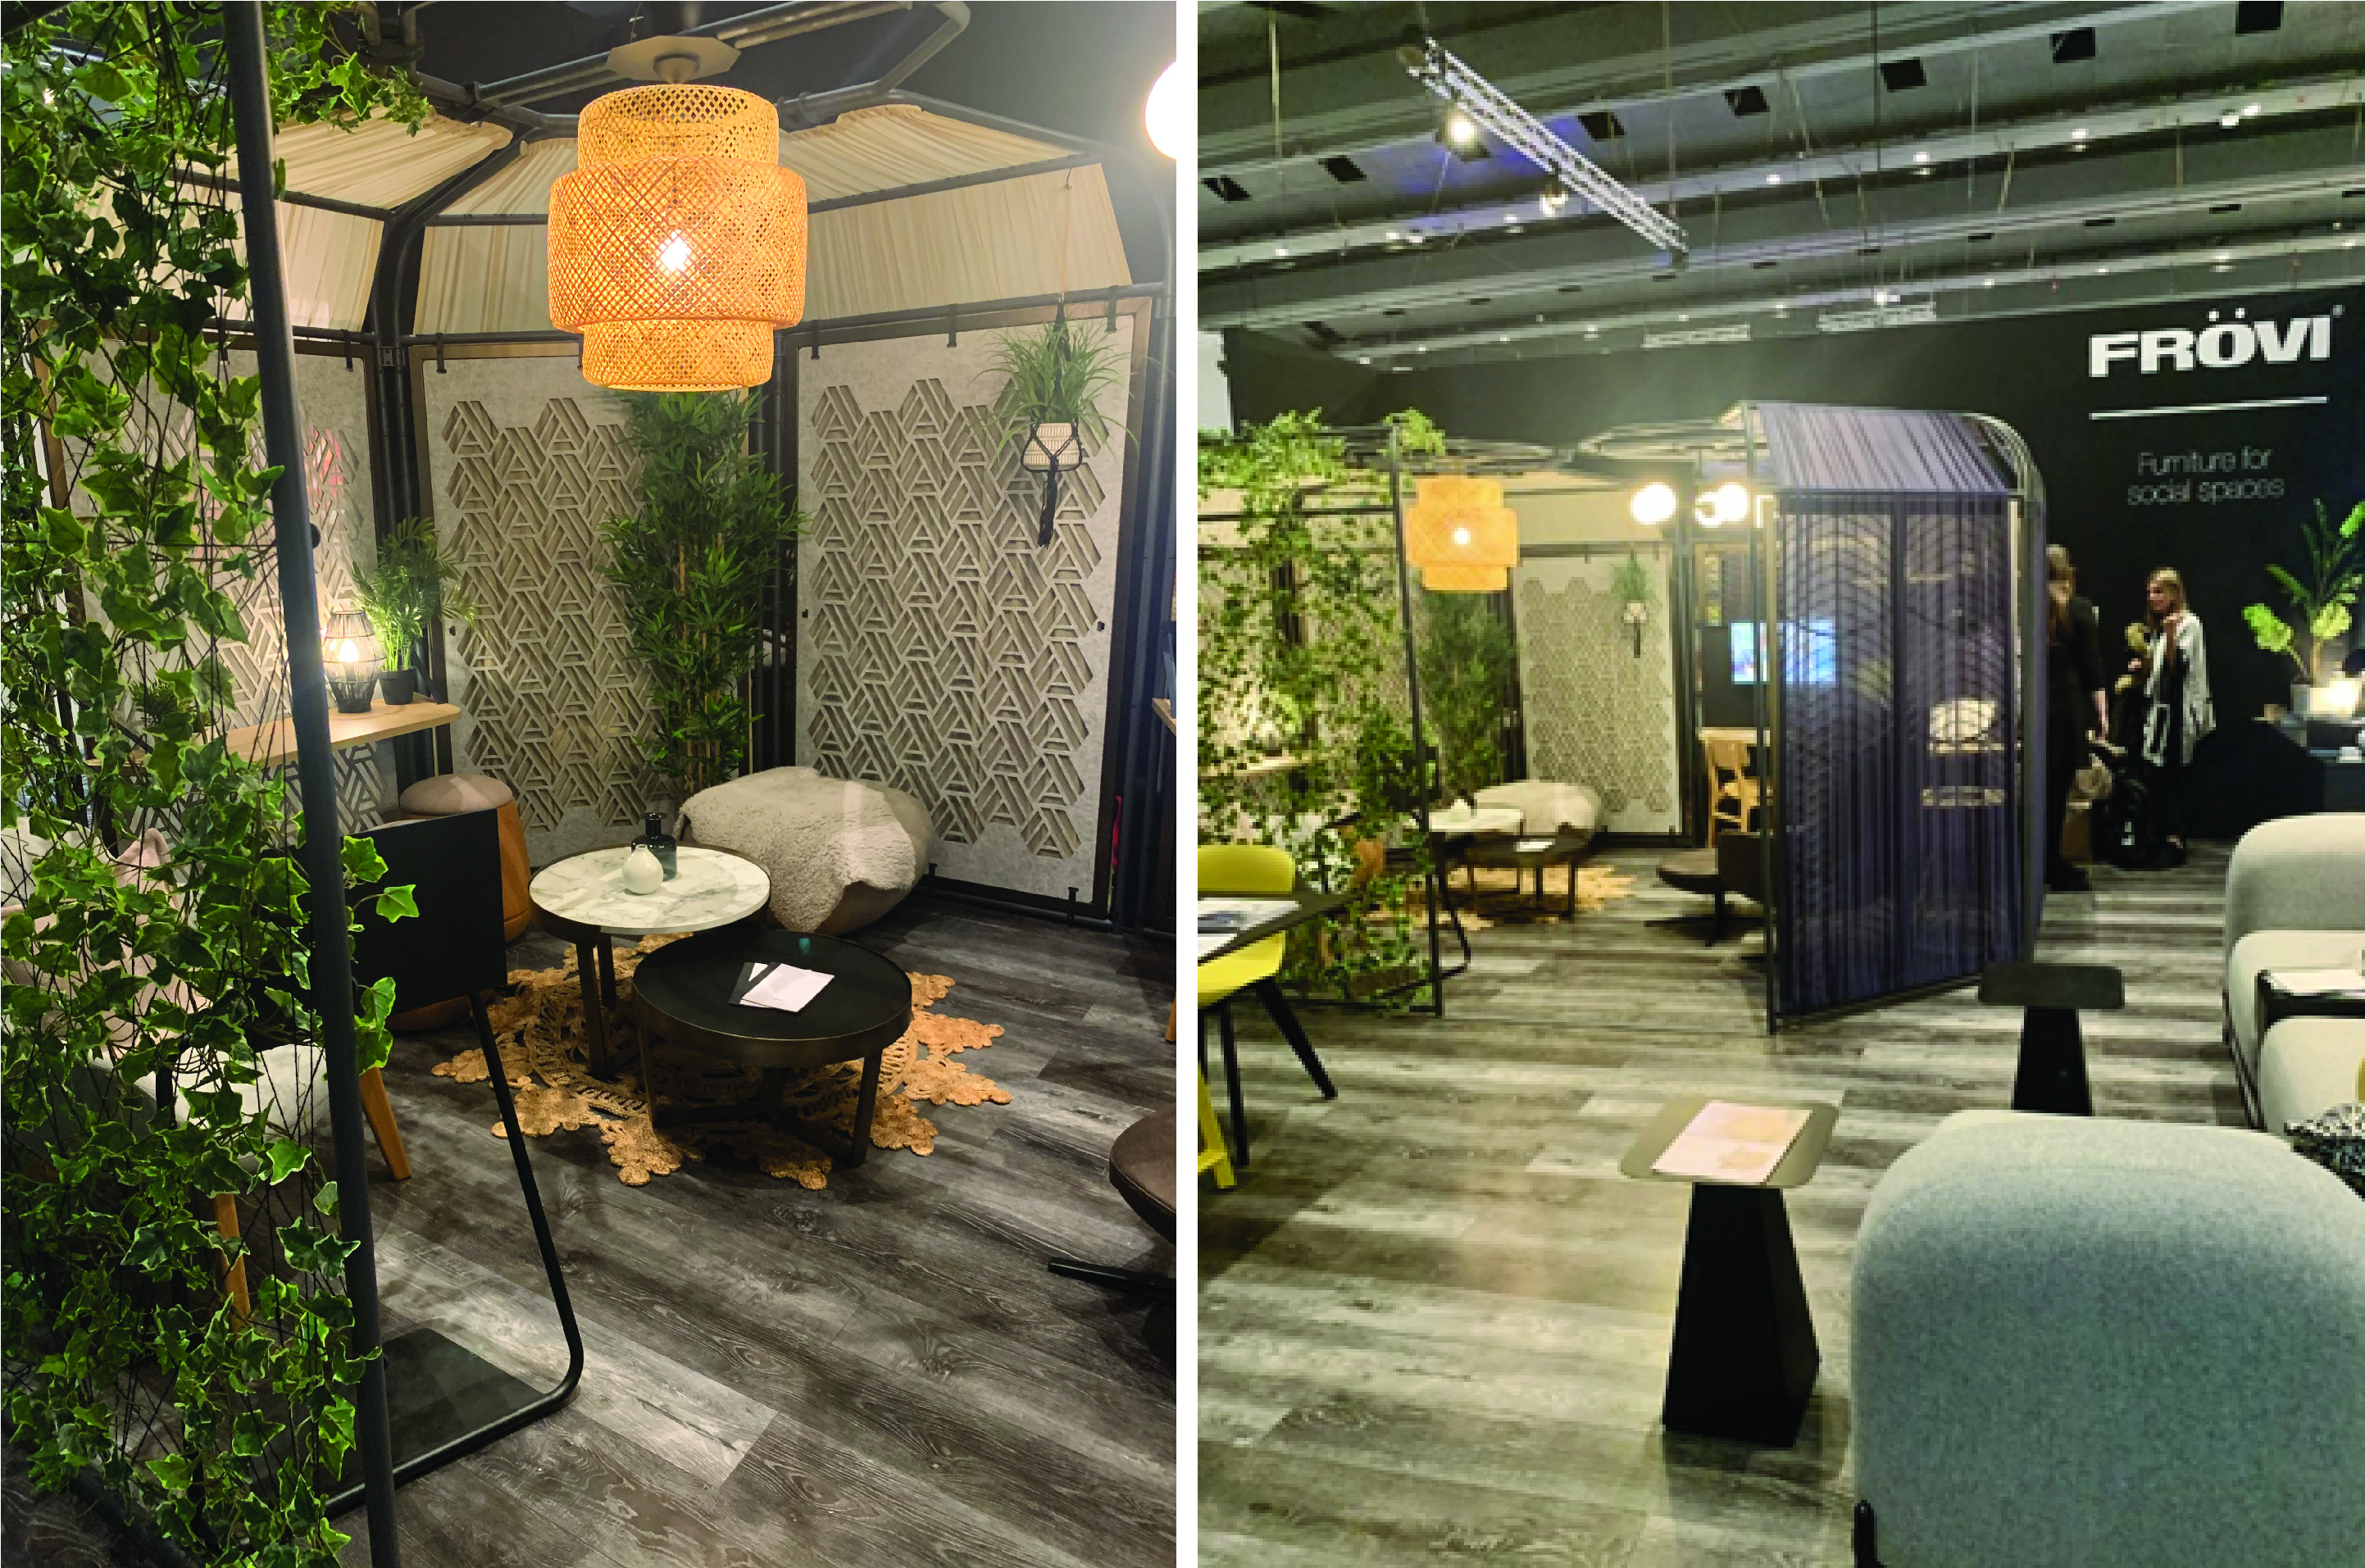 frovi-furniture-social-spaces